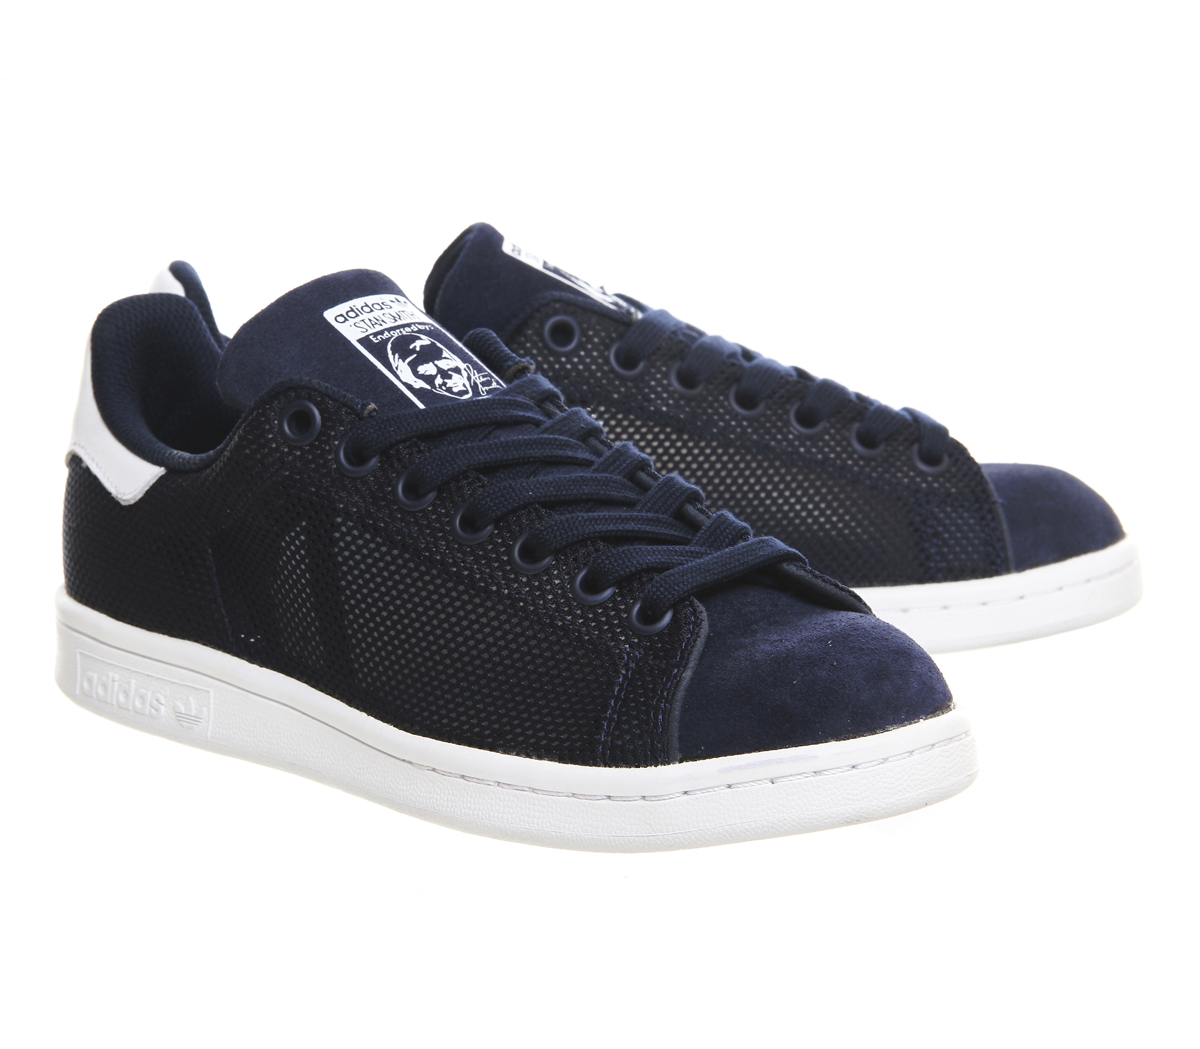 adidas originals stan smith in blue navy lyst. Black Bedroom Furniture Sets. Home Design Ideas